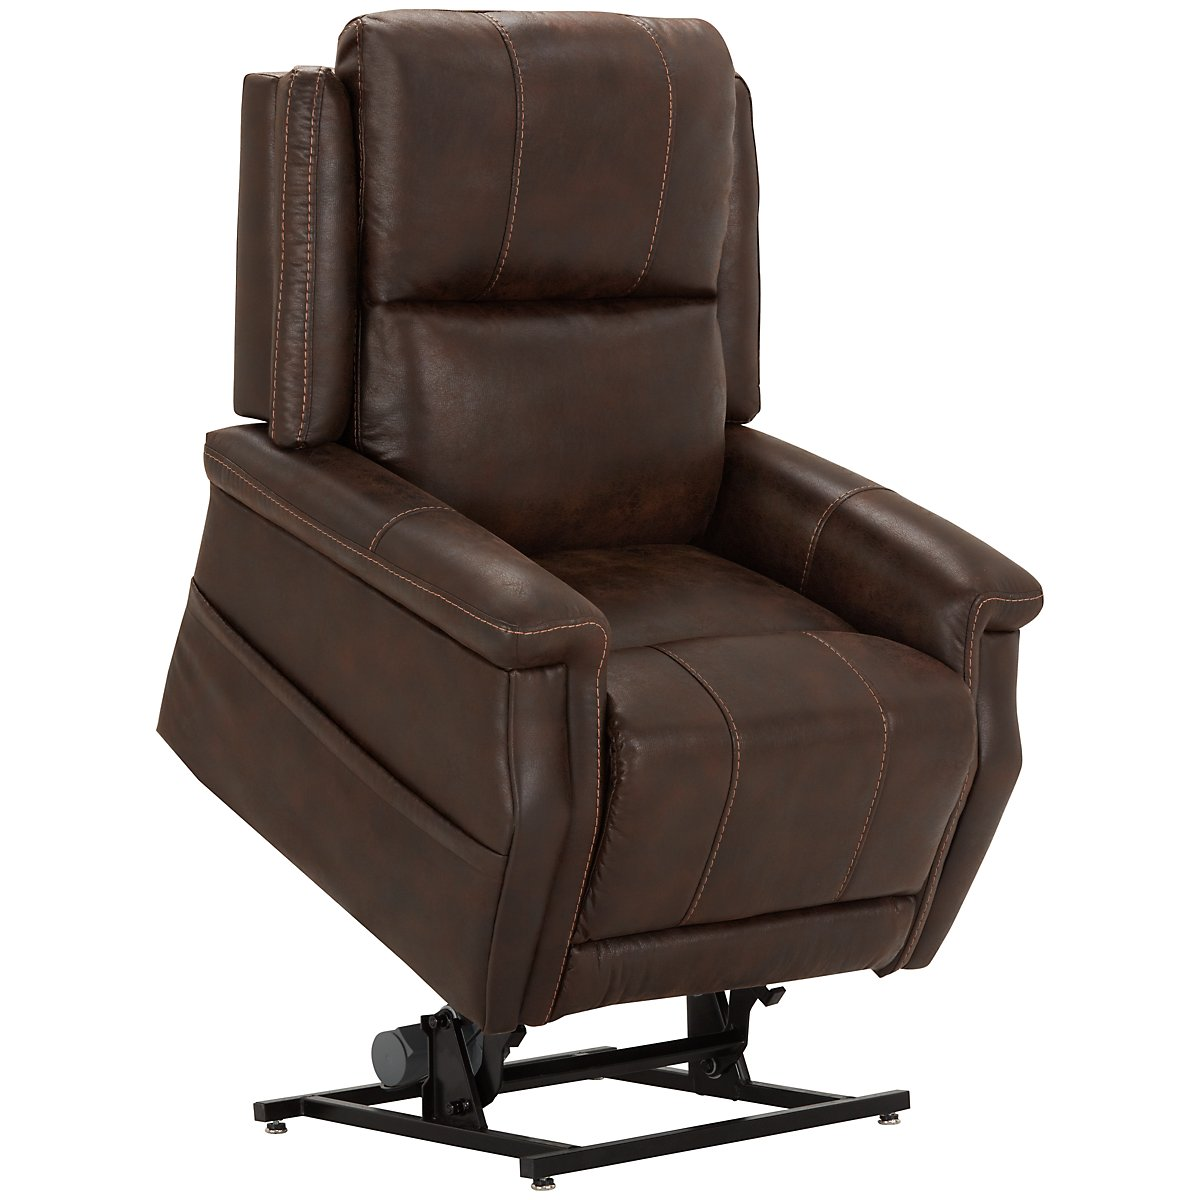 City Furniture Jude Dk Brown Microfiber Power Lift Recliner